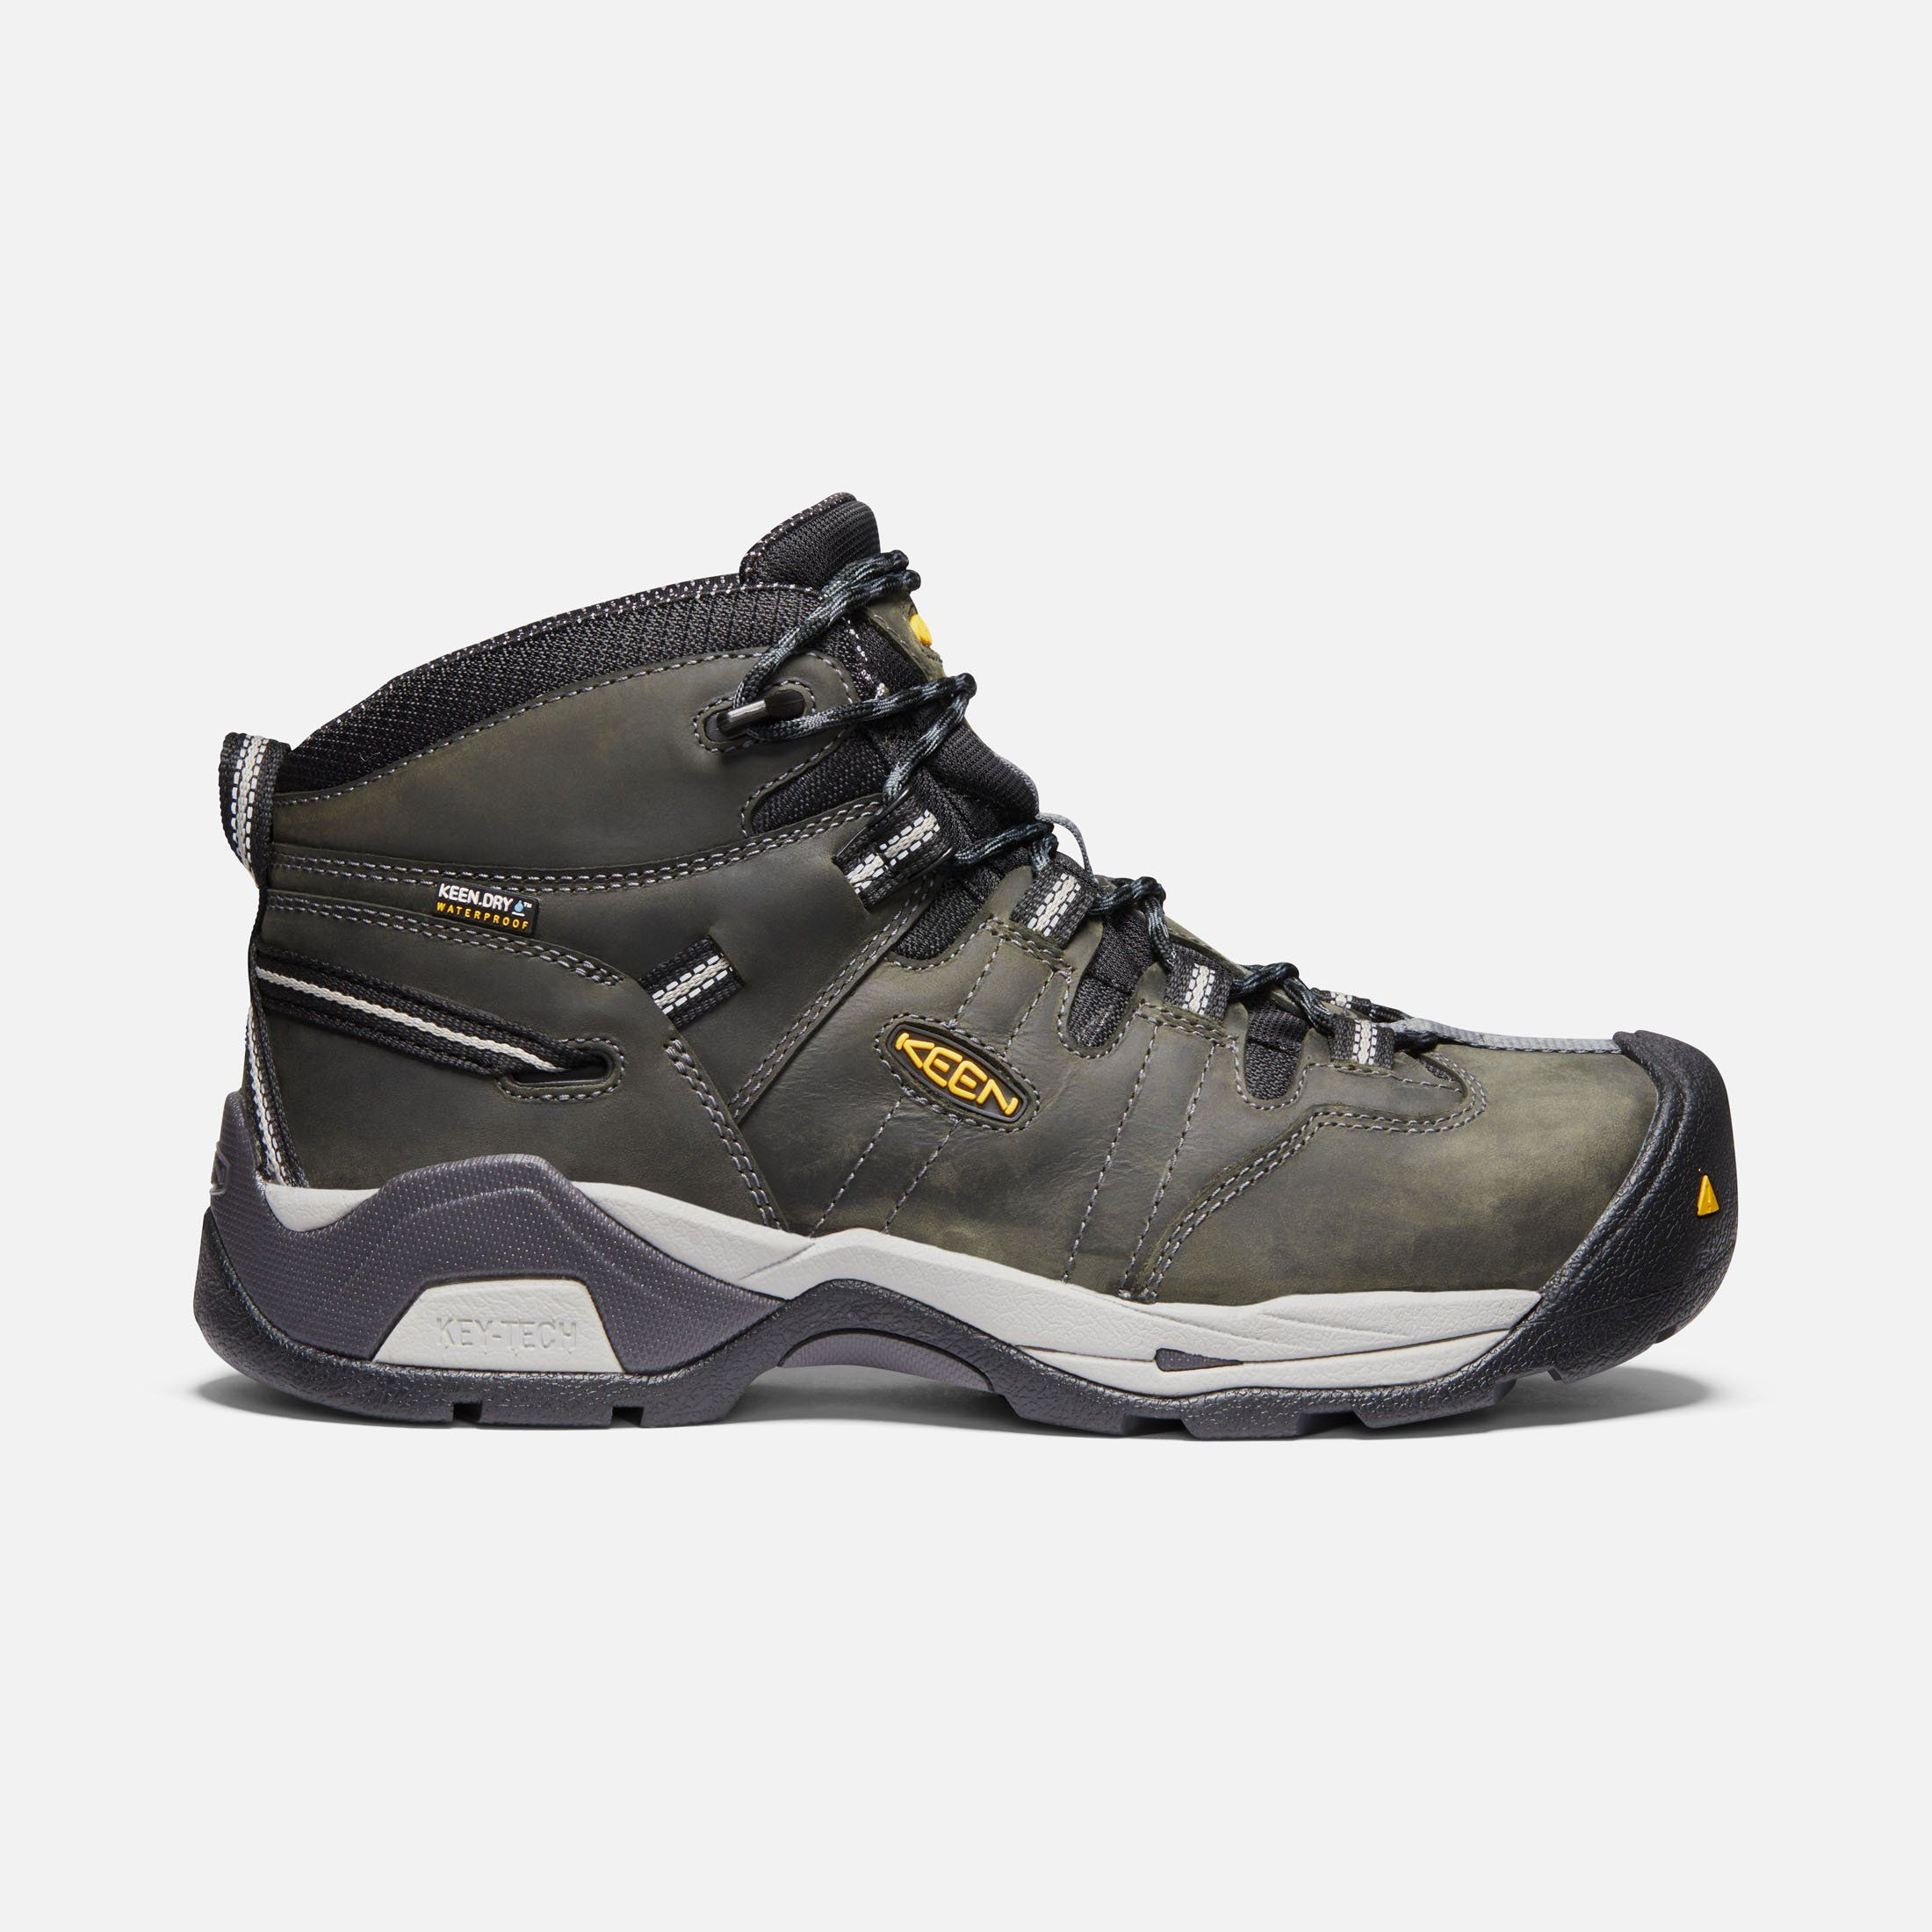 size 17 hiking boots